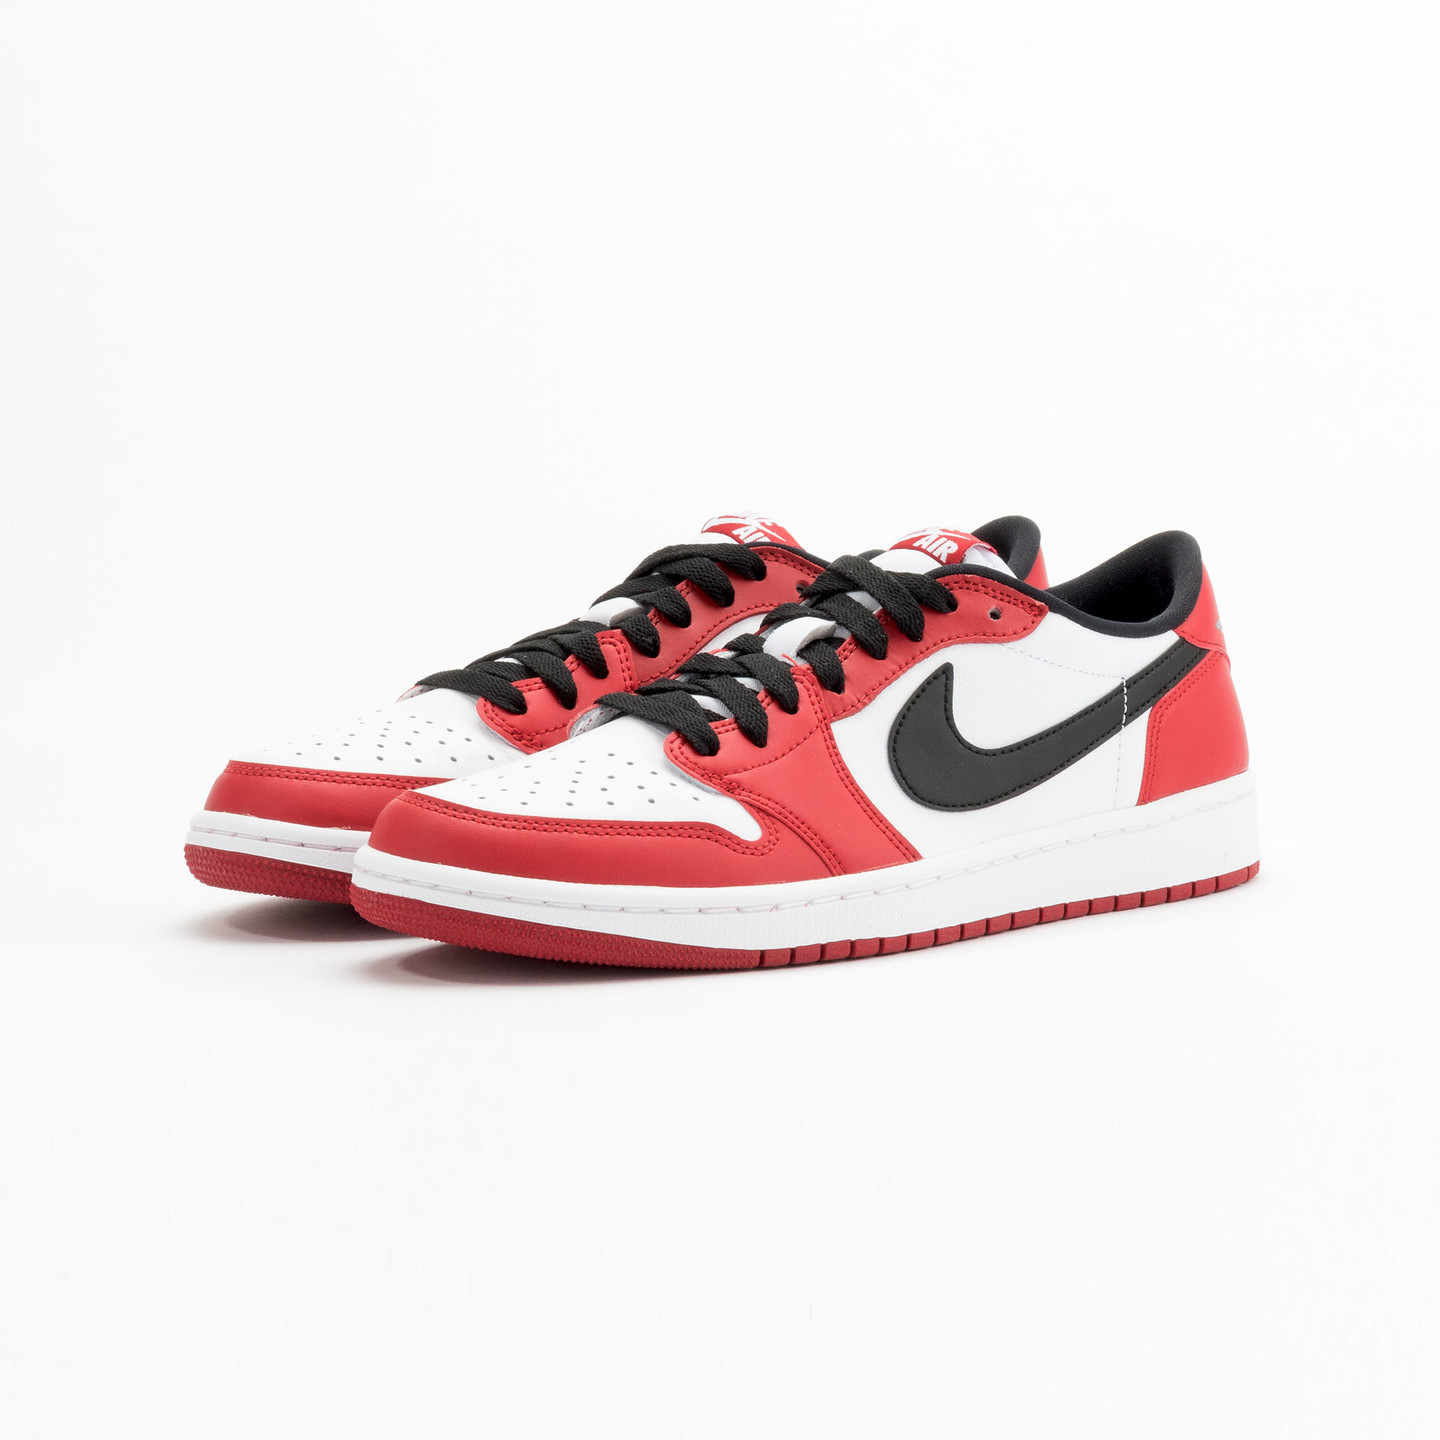 Nike Air Jordan 1 Retro Low OG 'Chicago' Varsity Red / Black / White 705329-600-44